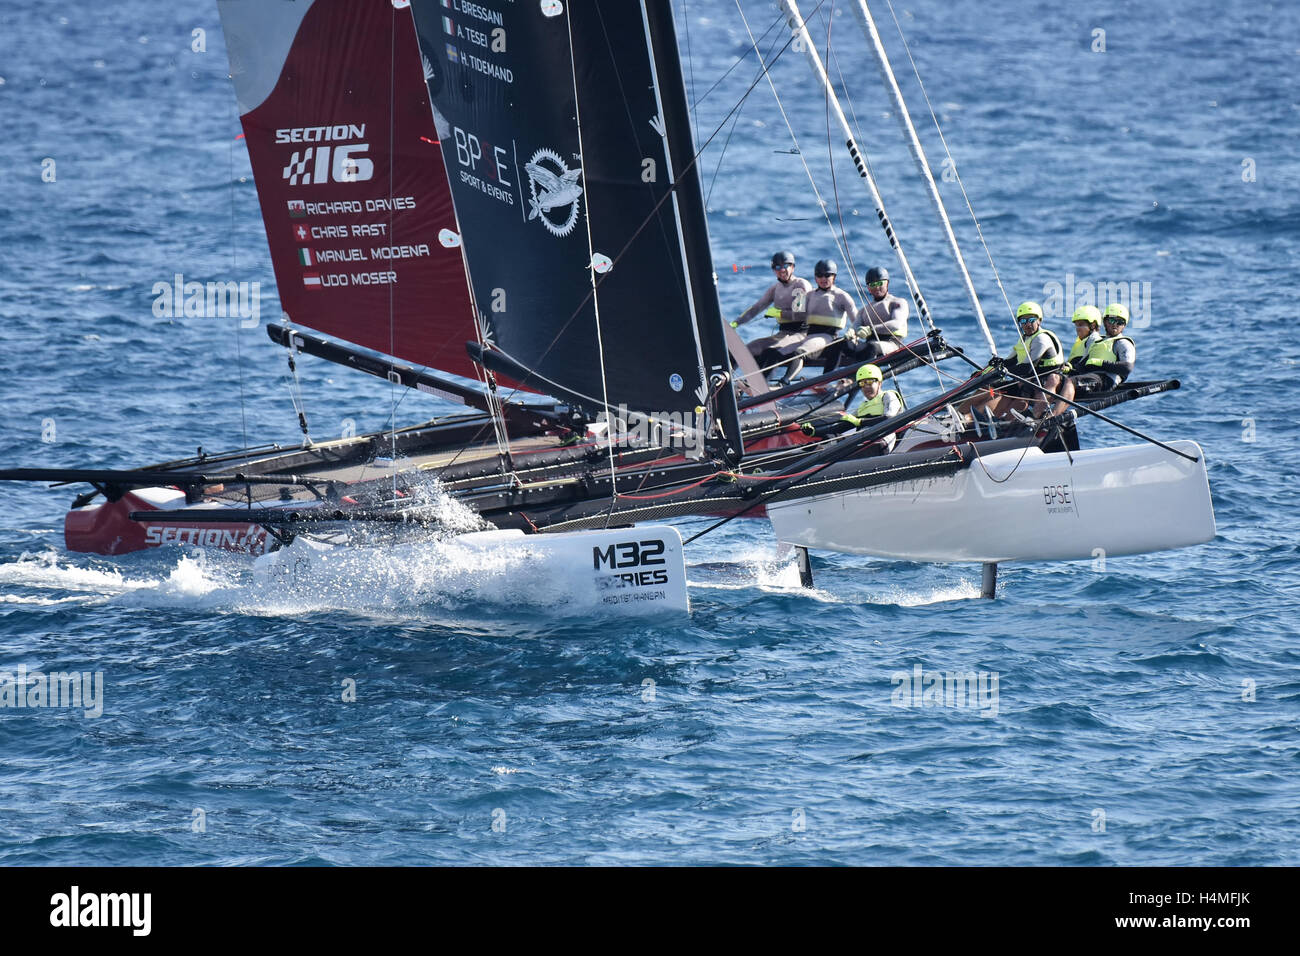 GENOA, ITALY - SEPTEMBER 25: last day of competition for M32 series mediterranean, a sailing fast catamaran competition - Stock Image